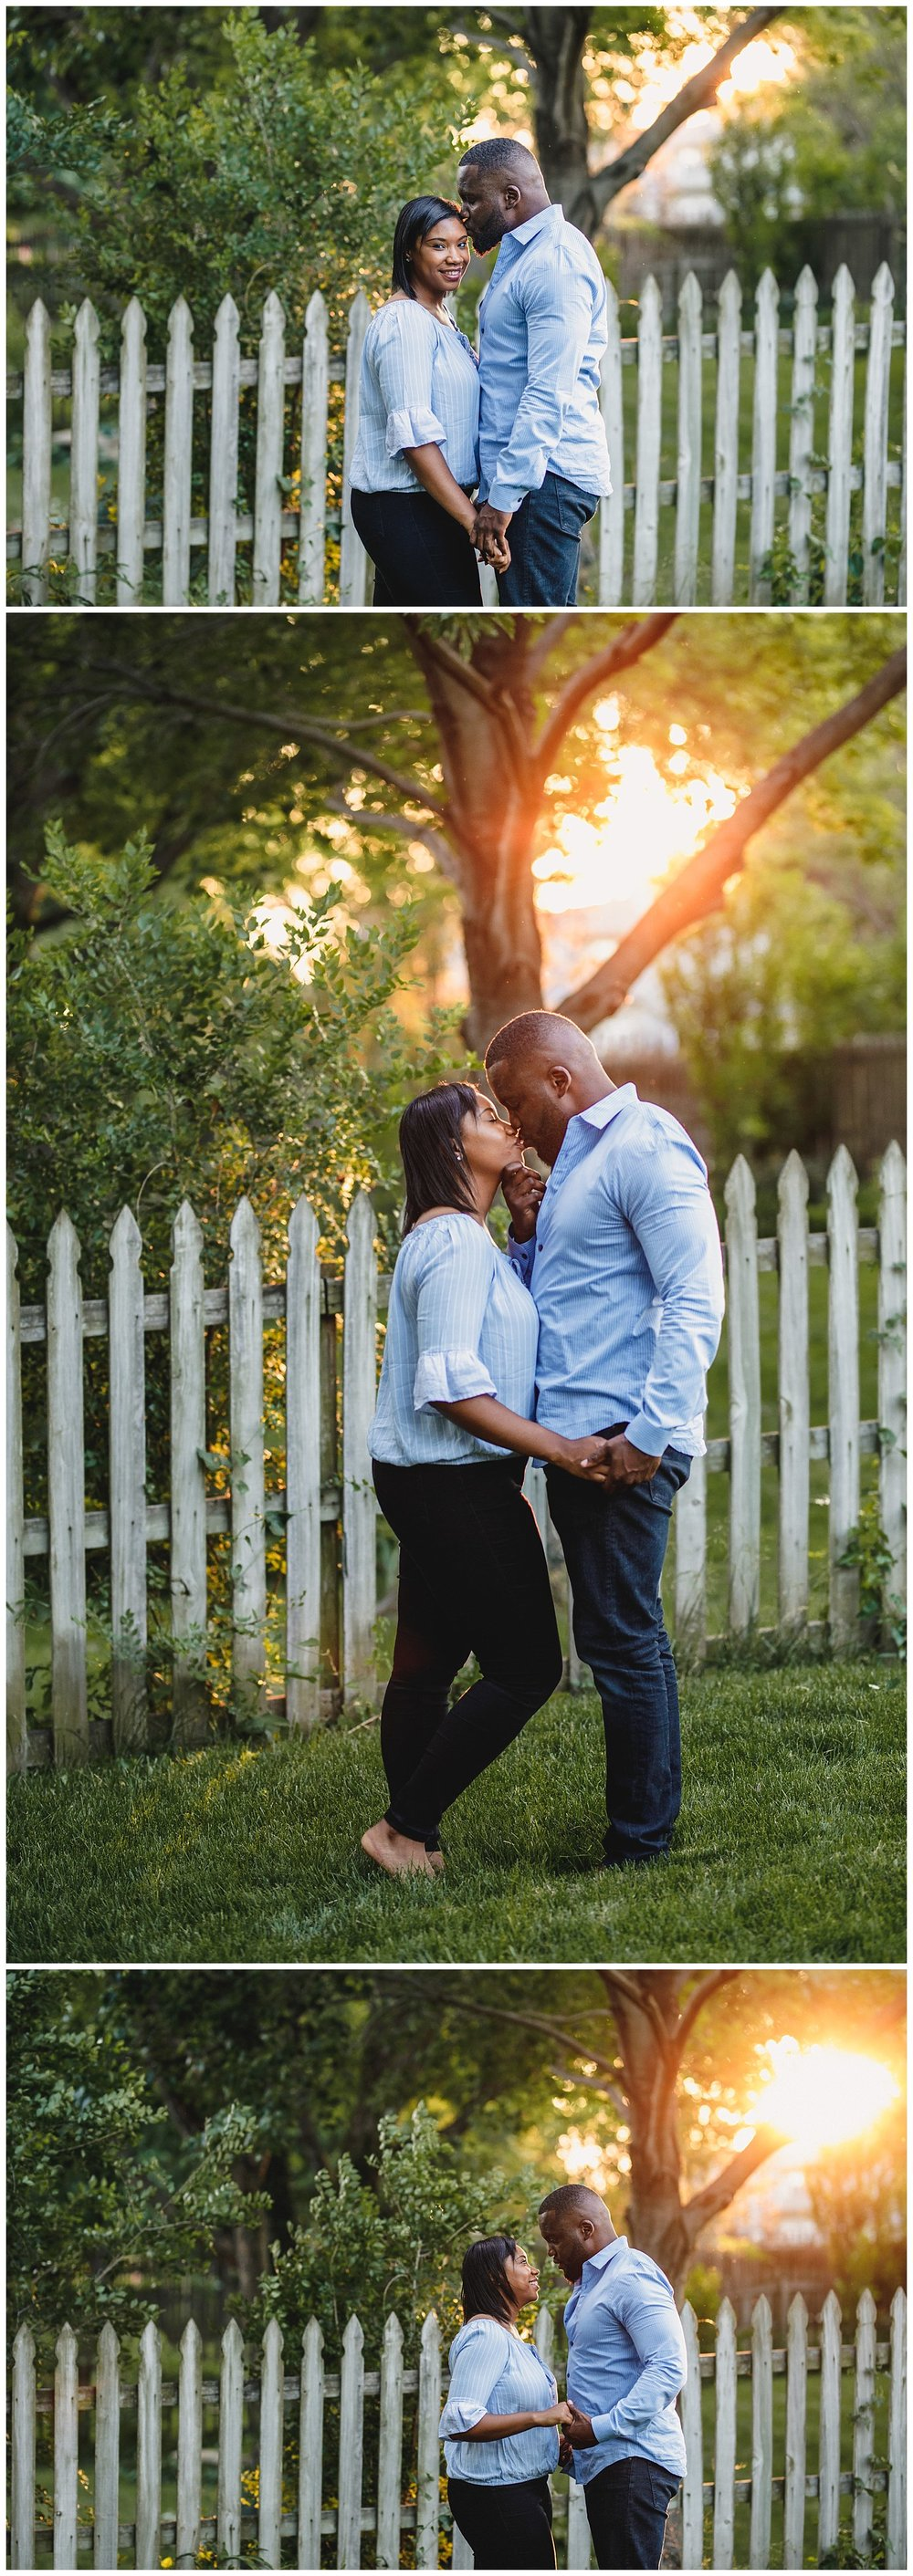 Kansas_City_Engagment_In_Home_Session_Kelsey_Diane_Photography_Wedding_Photographer_Engagment_Photographer_0123_Bri_Prime.jpg